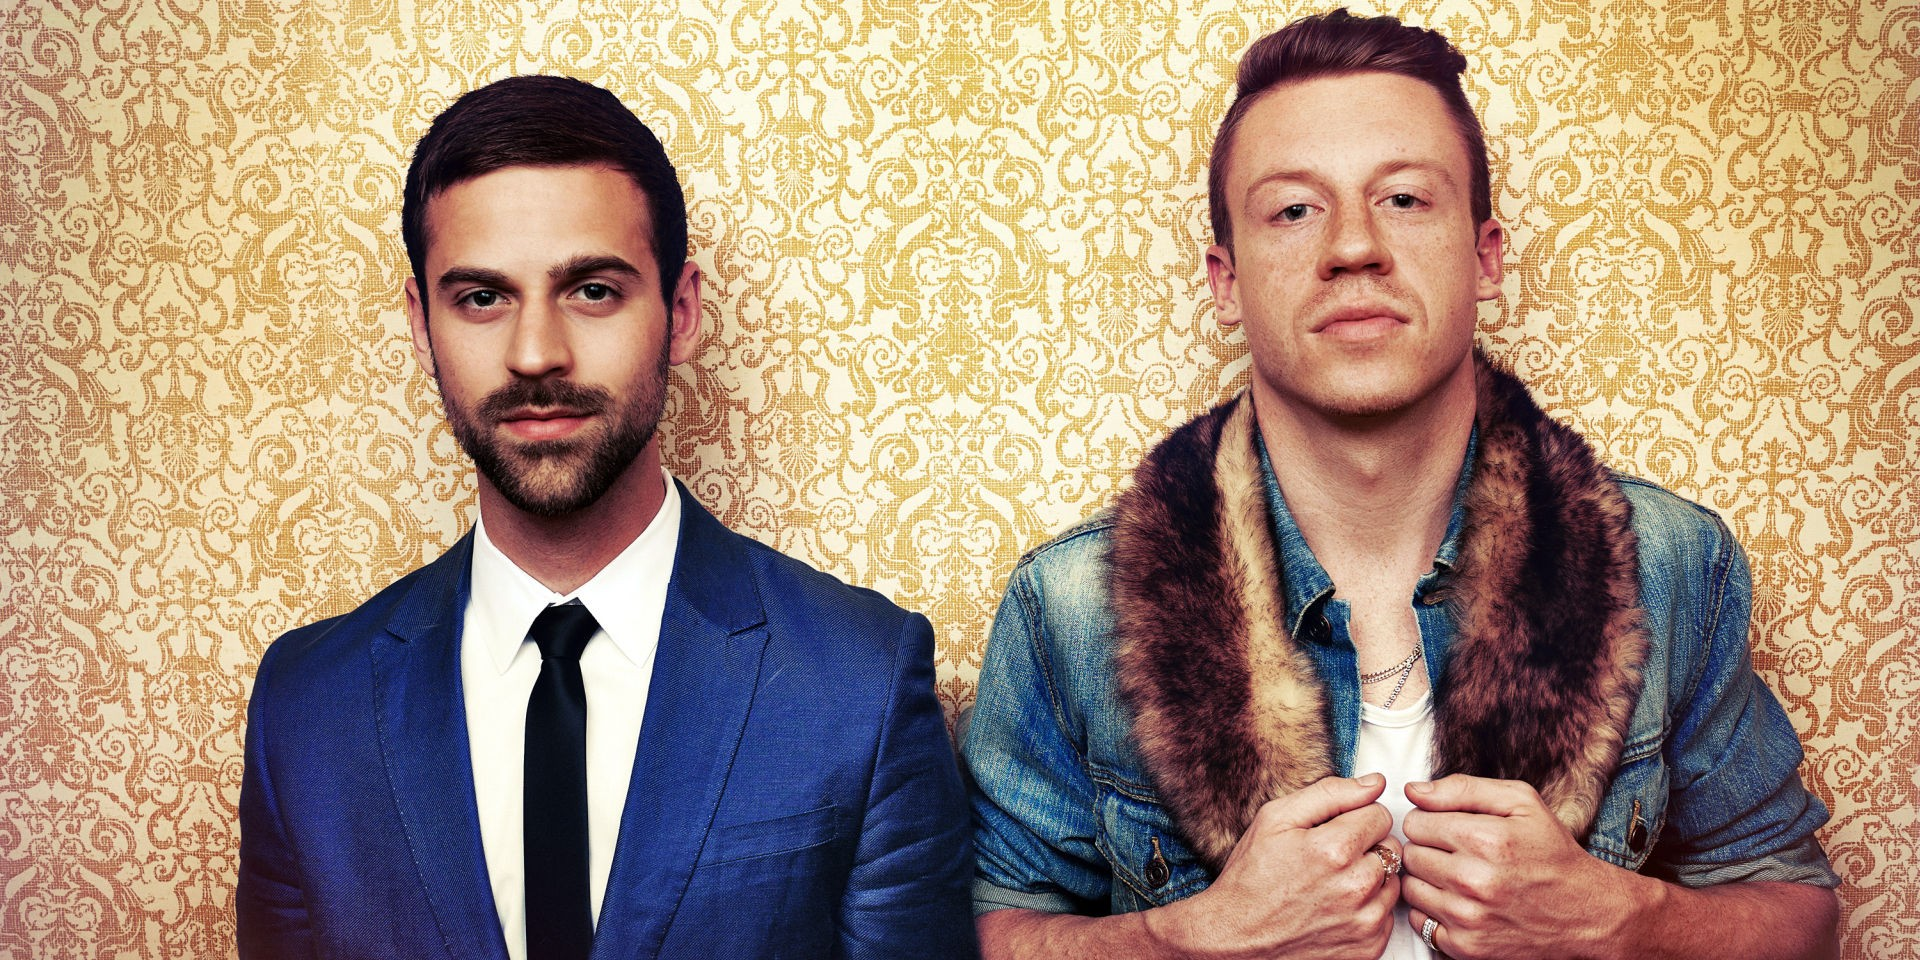 Macklemore & Ryan Lewis are coming to Singapore